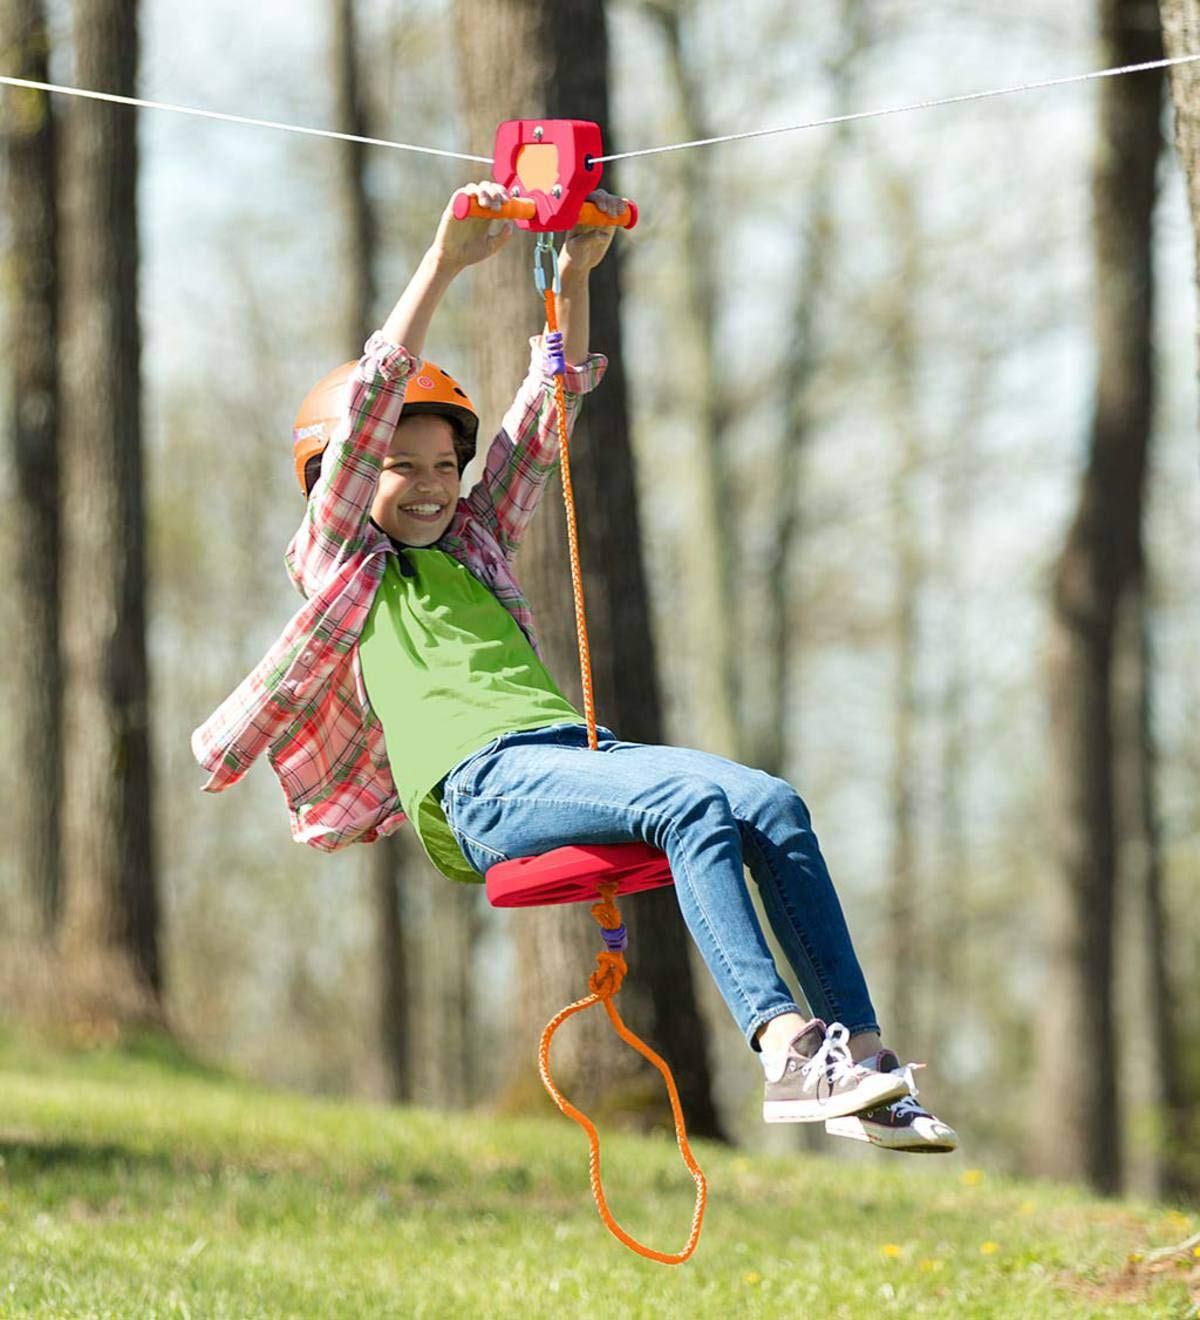 HearthSong 80-Foot Red Zipline Kit for Kids - Adjustable and Removable Seat - Non Slip Carriage Handles and Rubber Brake - Backyard Playground Equipment - Approx. 80'L